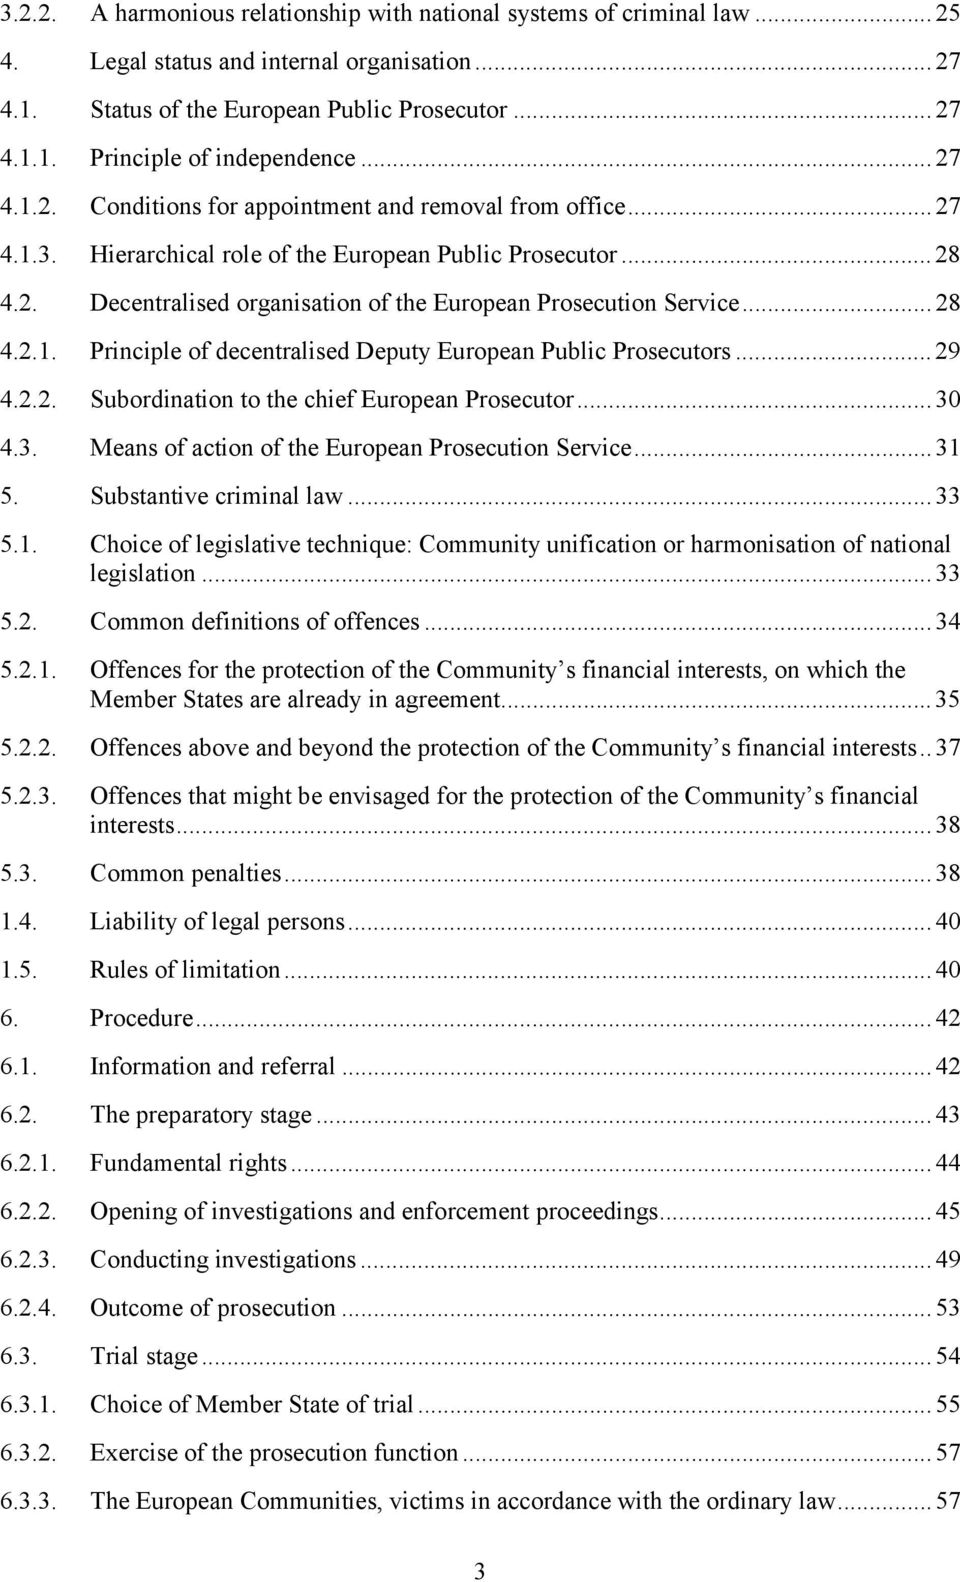 .. 28 4.2.1. Principle of decentralised Deputy European Public Prosecutors... 29 4.2.2. Subordination to the chief European Prosecutor... 30 4.3. Means of action of the European Prosecution Service.